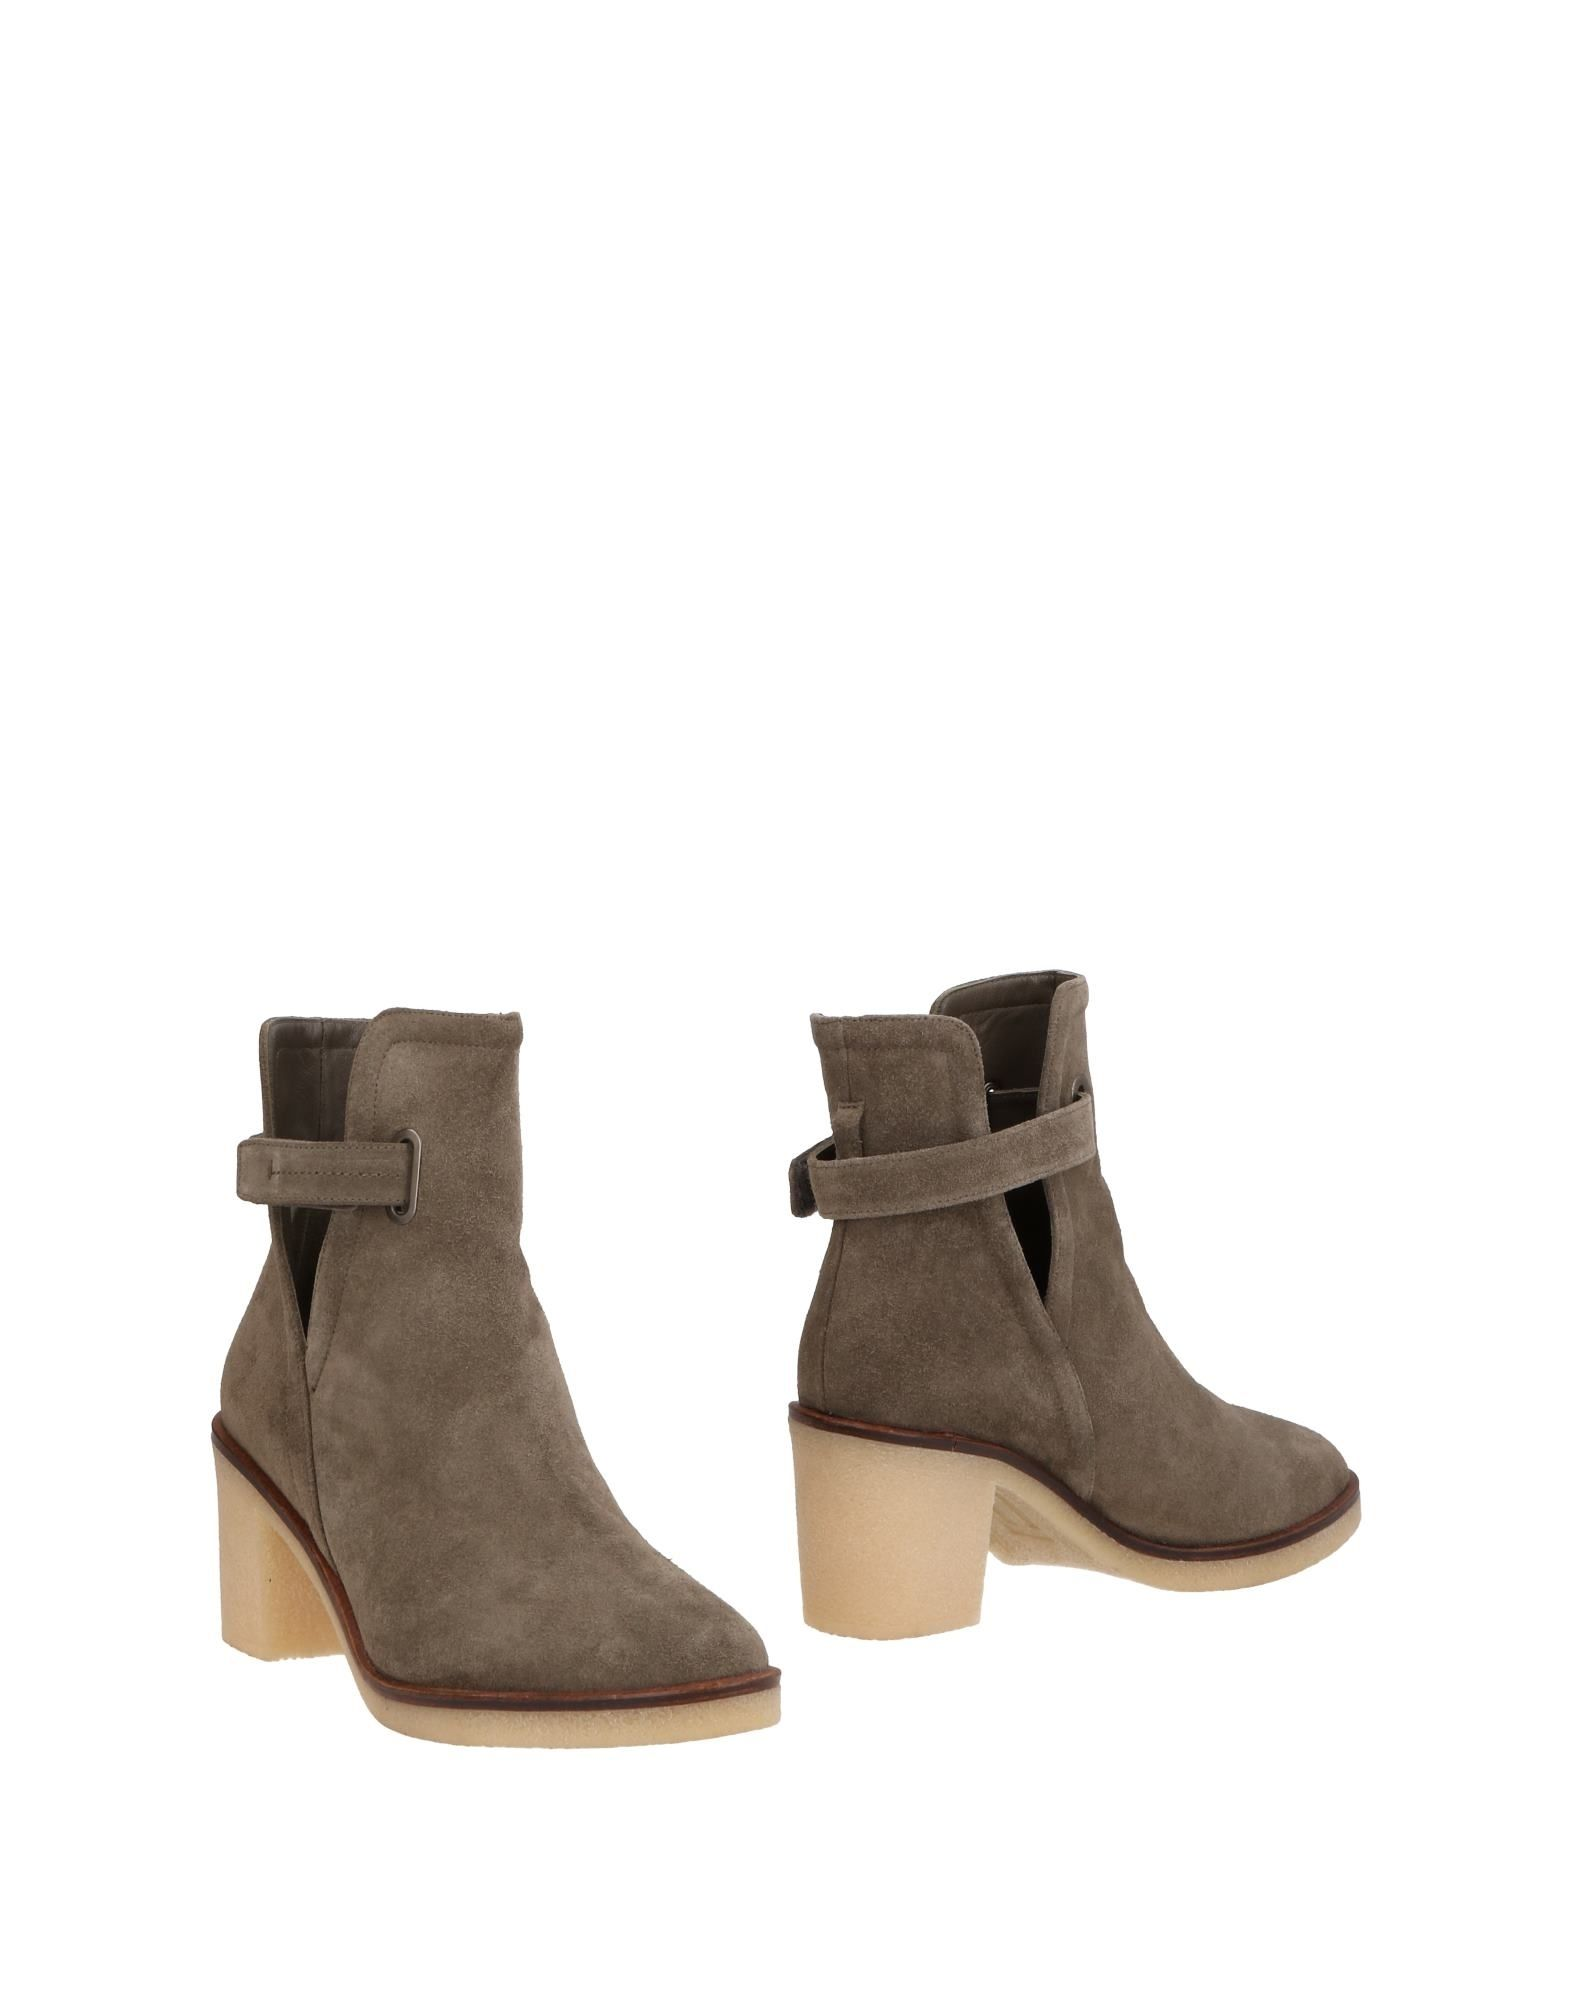 Intropia on Ankle Boot - Women Intropia Ankle Boots online on Intropia  Australia - 11497303BT 19e78f